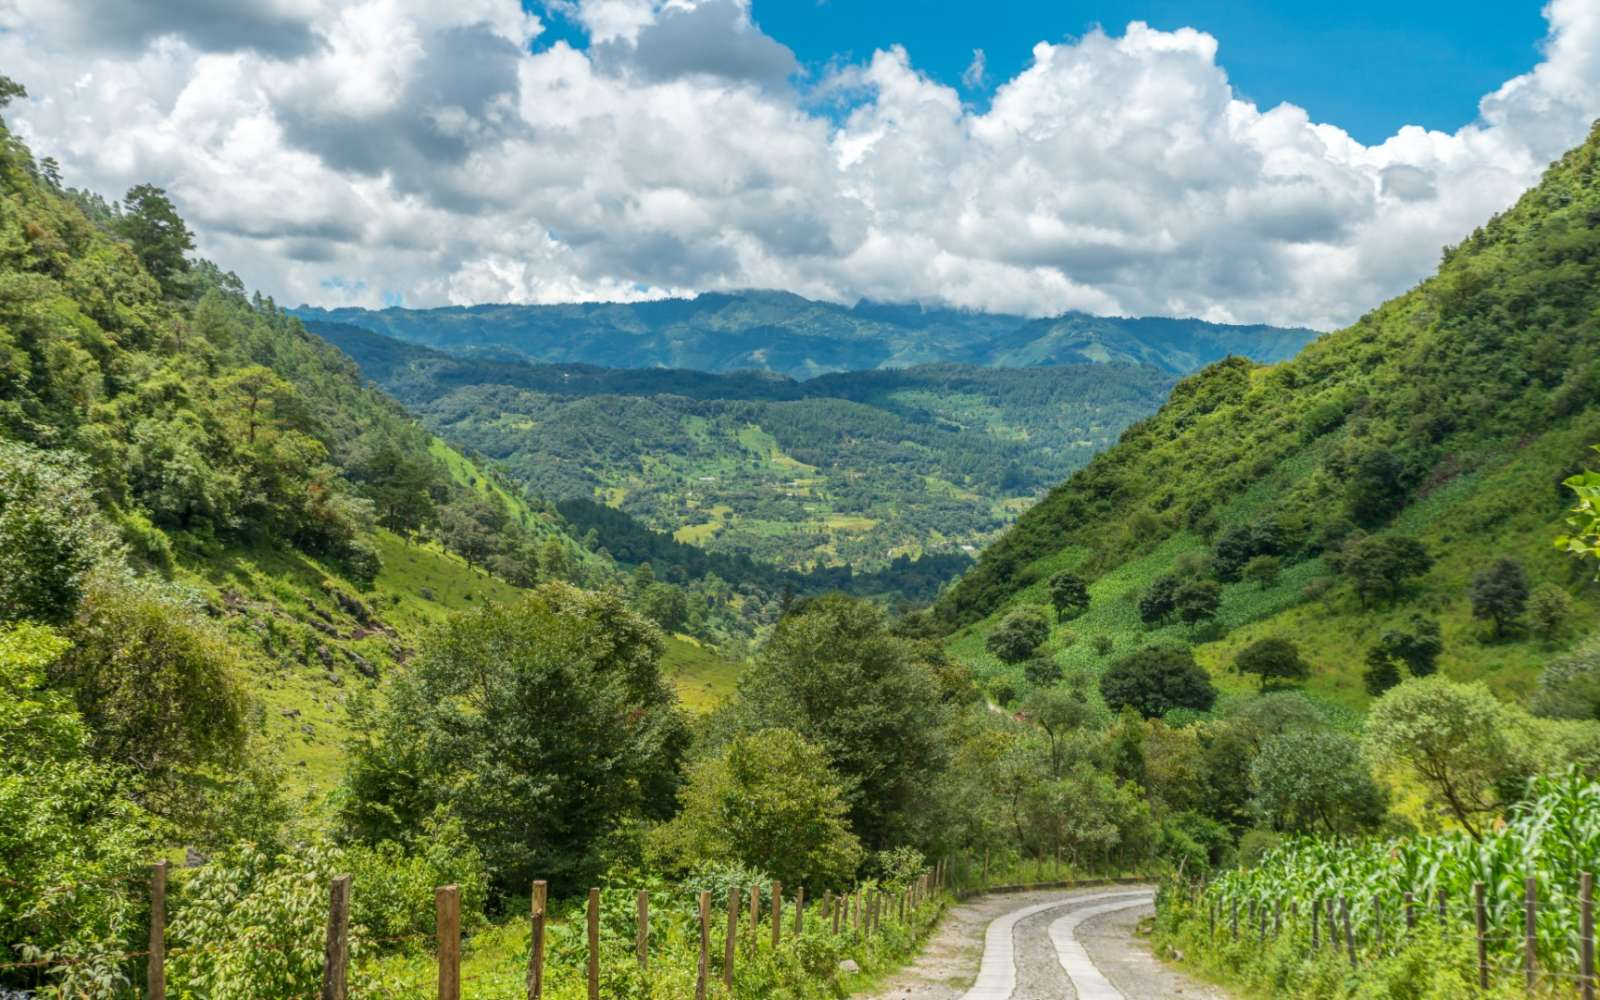 Quiet road with lovely views near Nebaj in the Ixil Triangle of Guatemala